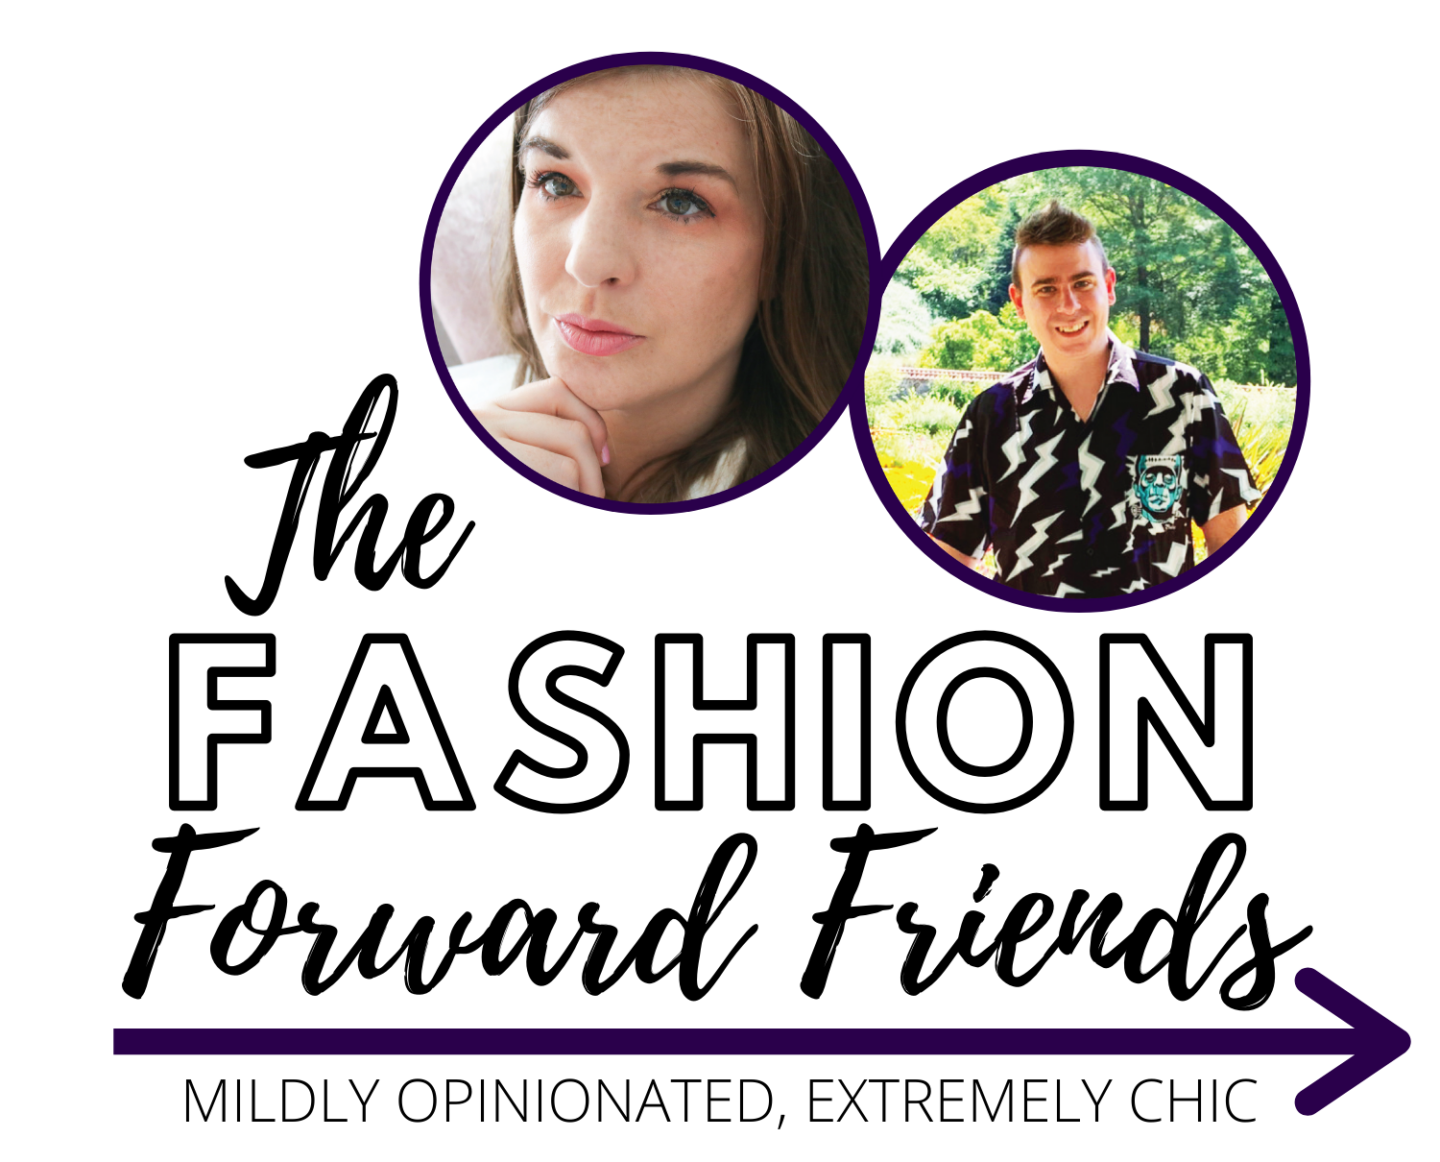 The Fashion Forward Friends Podcast hosted by Kelly Lund and Thomas Monks #Podcast #fashionblogger #FashionNews